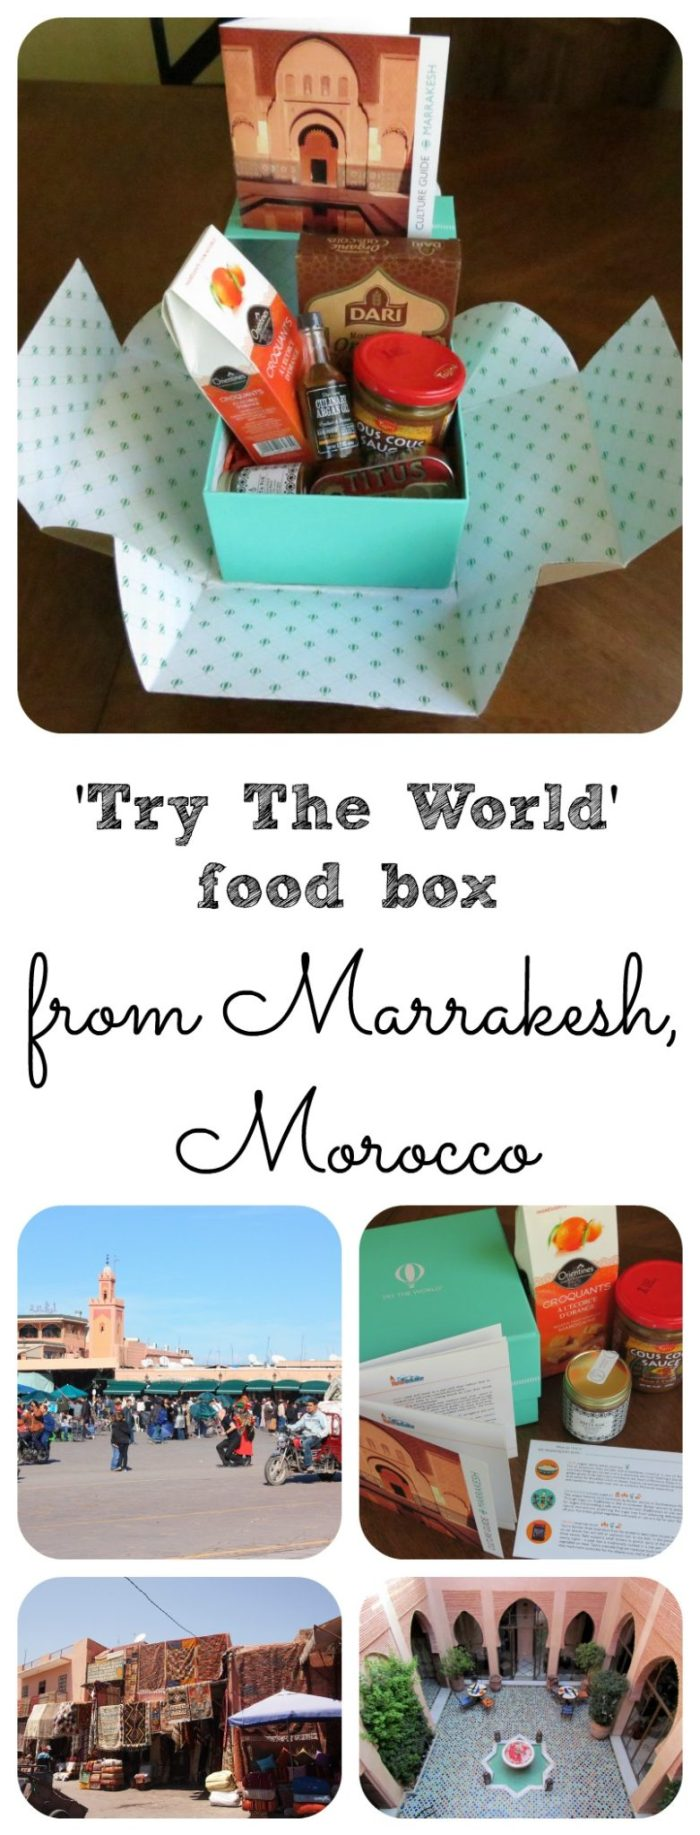 Try The World Moroccan Food Box